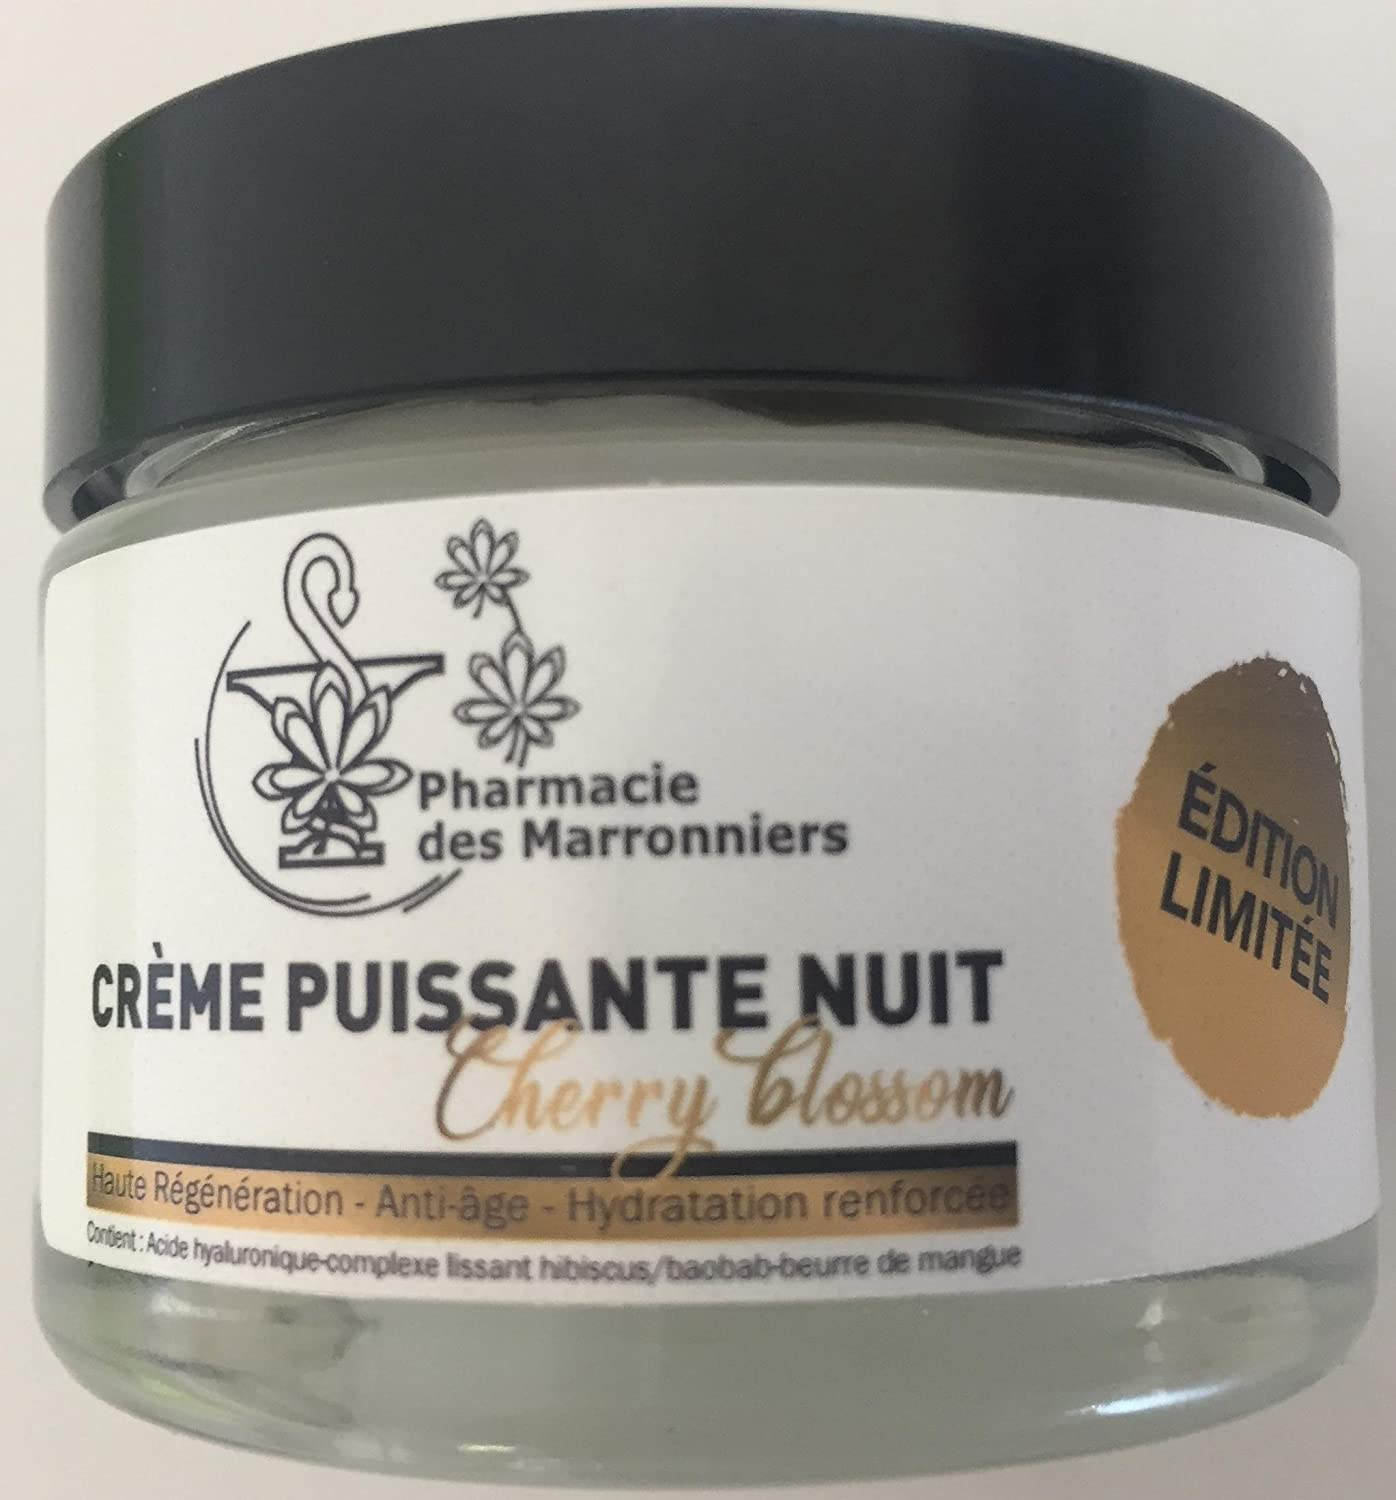 CREME NUIT Edition Cherry Blossom Limitée Pharmacie des Marronniers 50ml skinclever